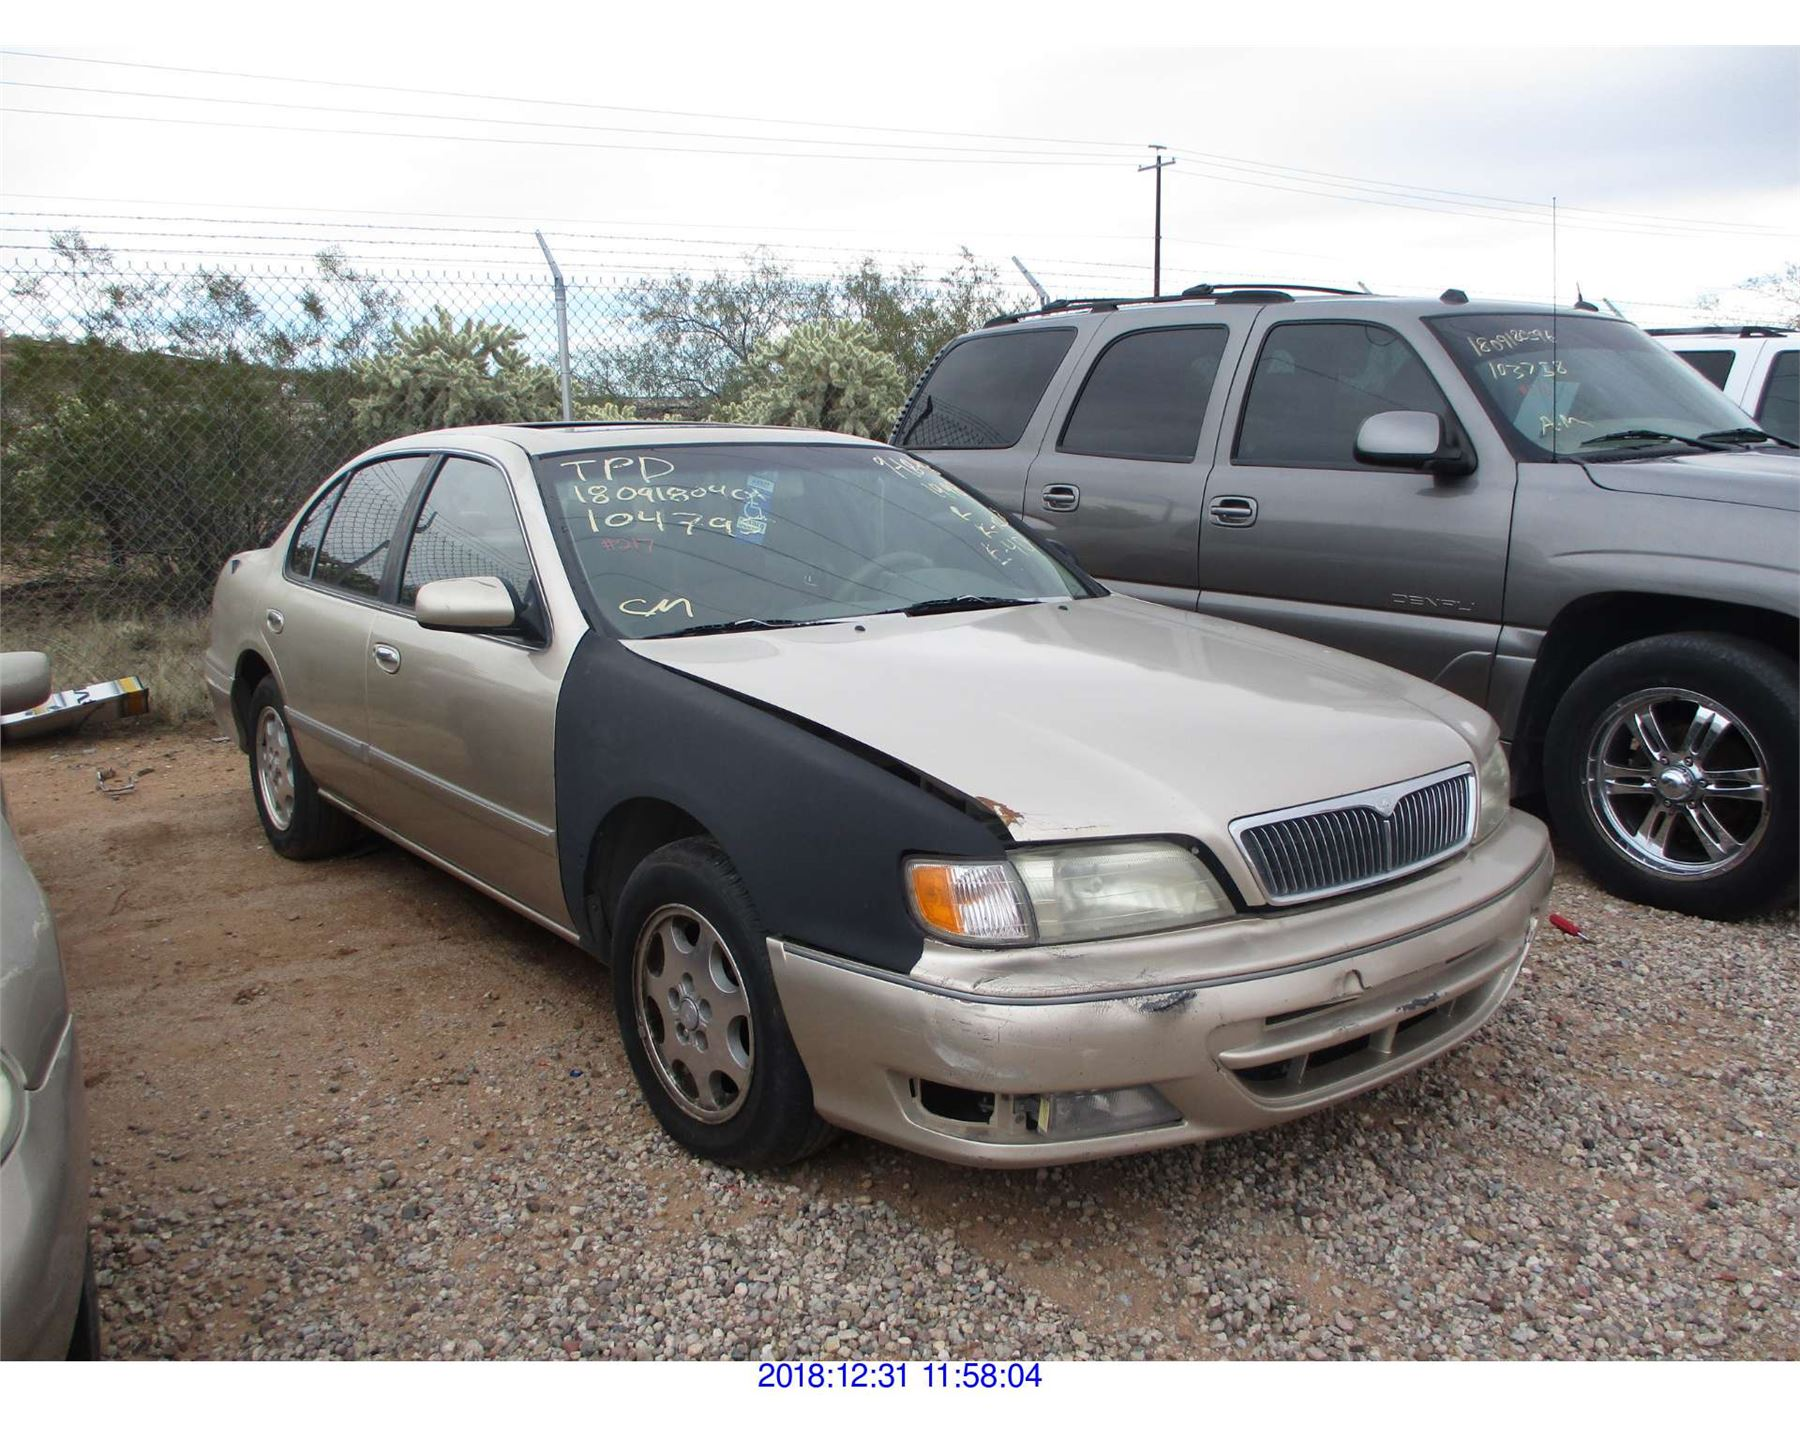 hight resolution of image 1 1998 infiniti i30 restored salvage